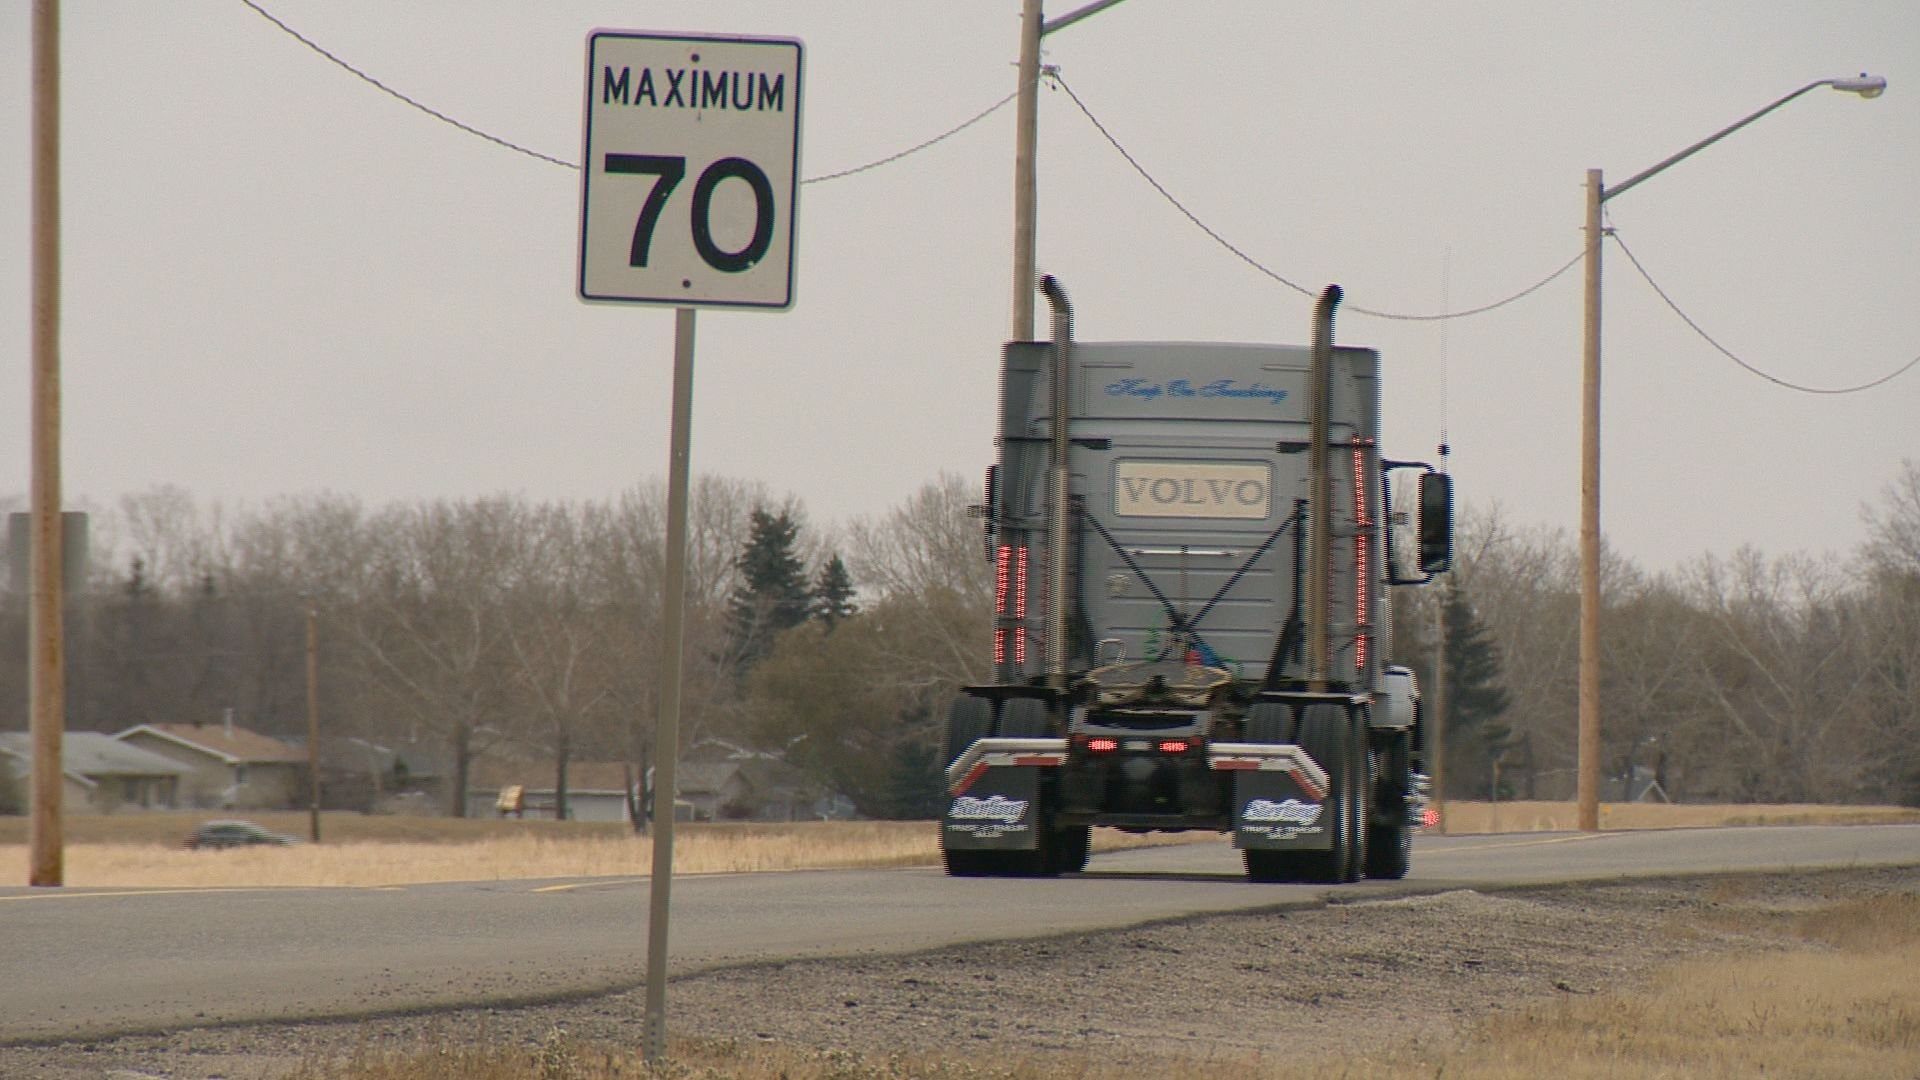 The Saskatchewan Trucking Association has said they're losing the route will result in lost efficiency and increased costs.